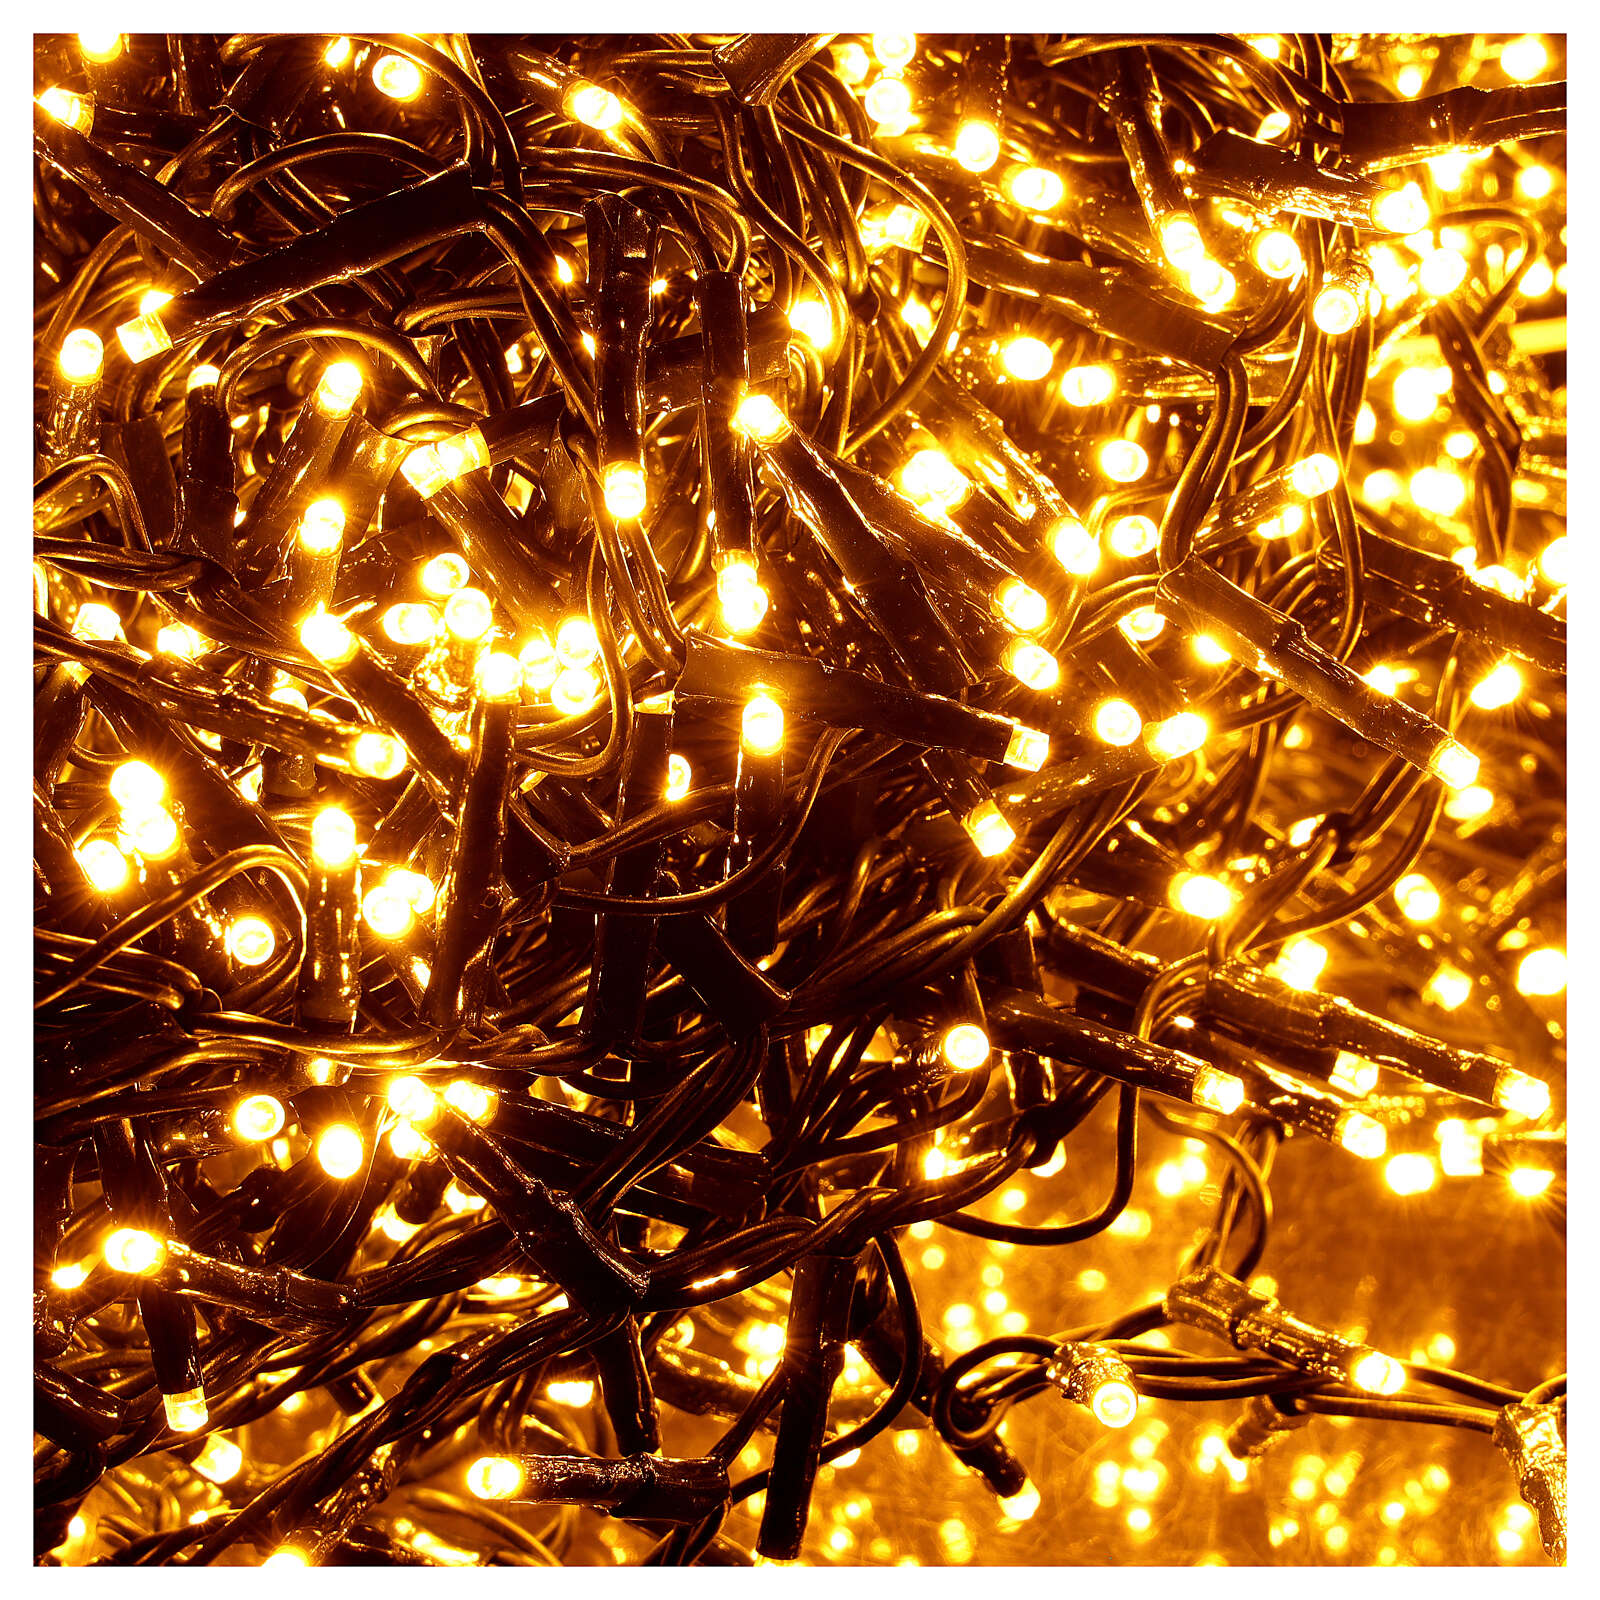 Christams lights, 1800 LED amber warm white remote control for outdoors 220V 4